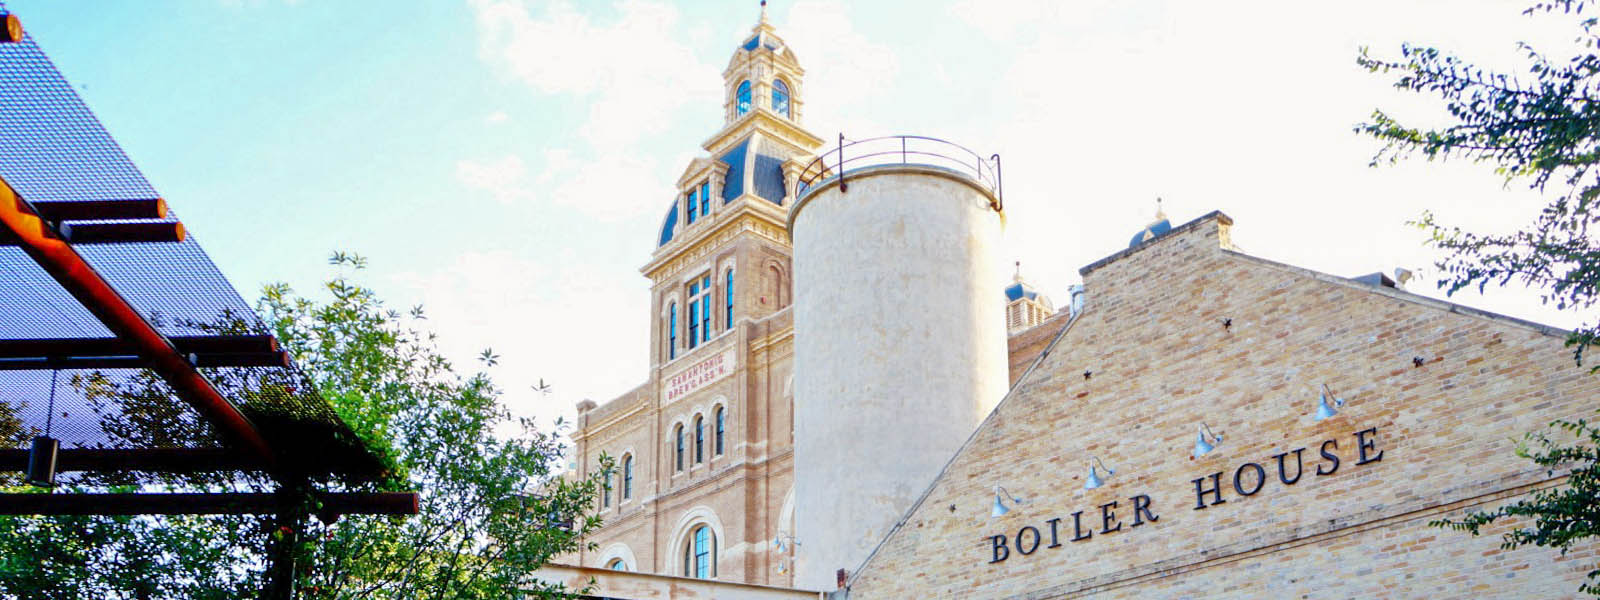 A scene in Tobin Hill San Antonio of a brewery with a large, historic building behind it against a blue sky